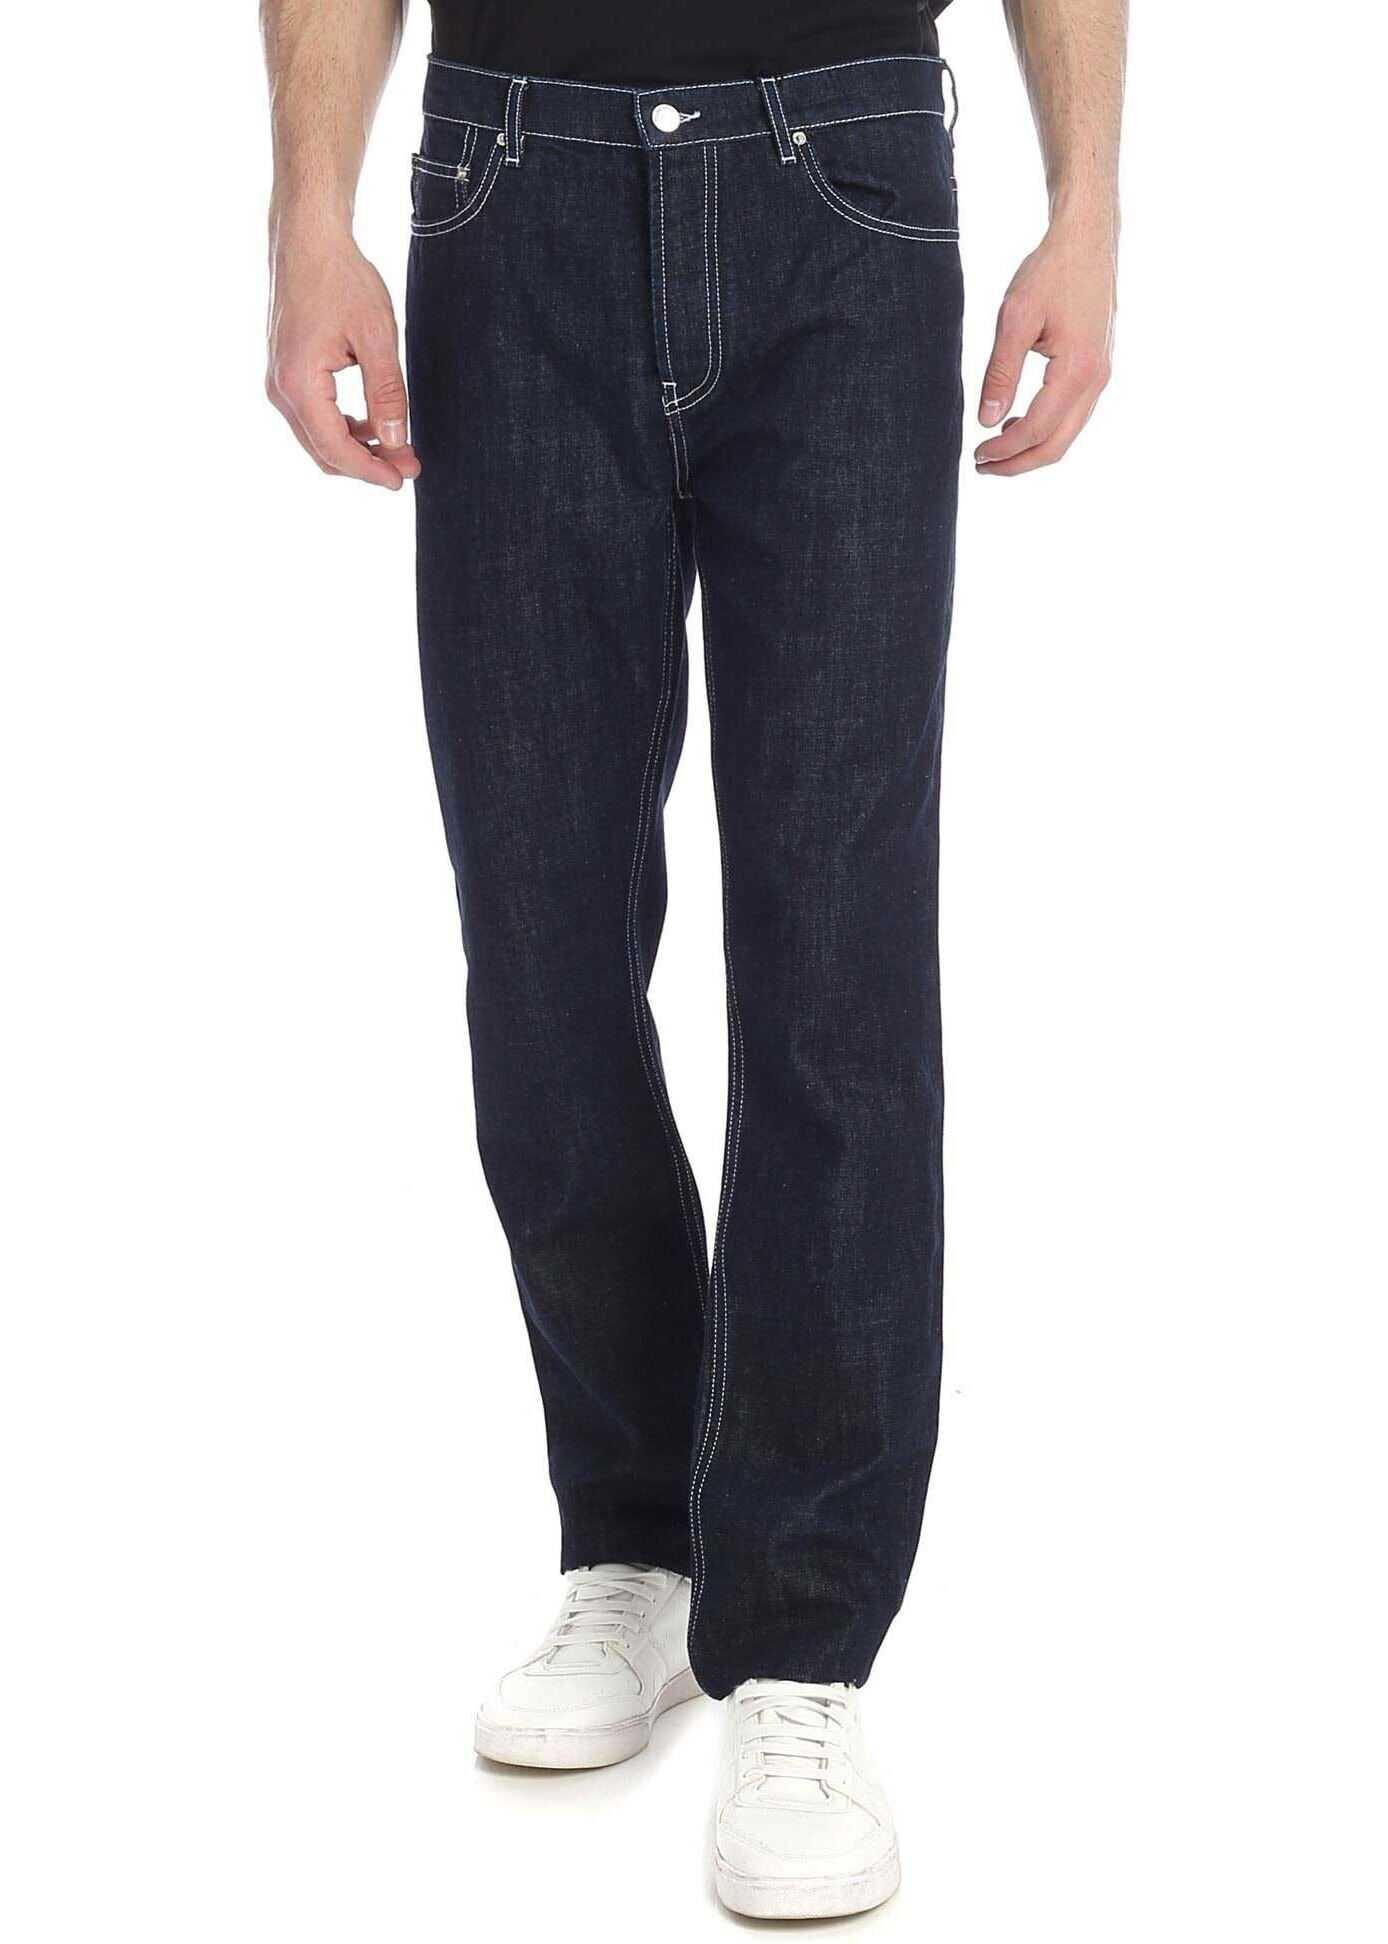 Kenzo Dark Blue Stretch Cotton Jeans Blue imagine